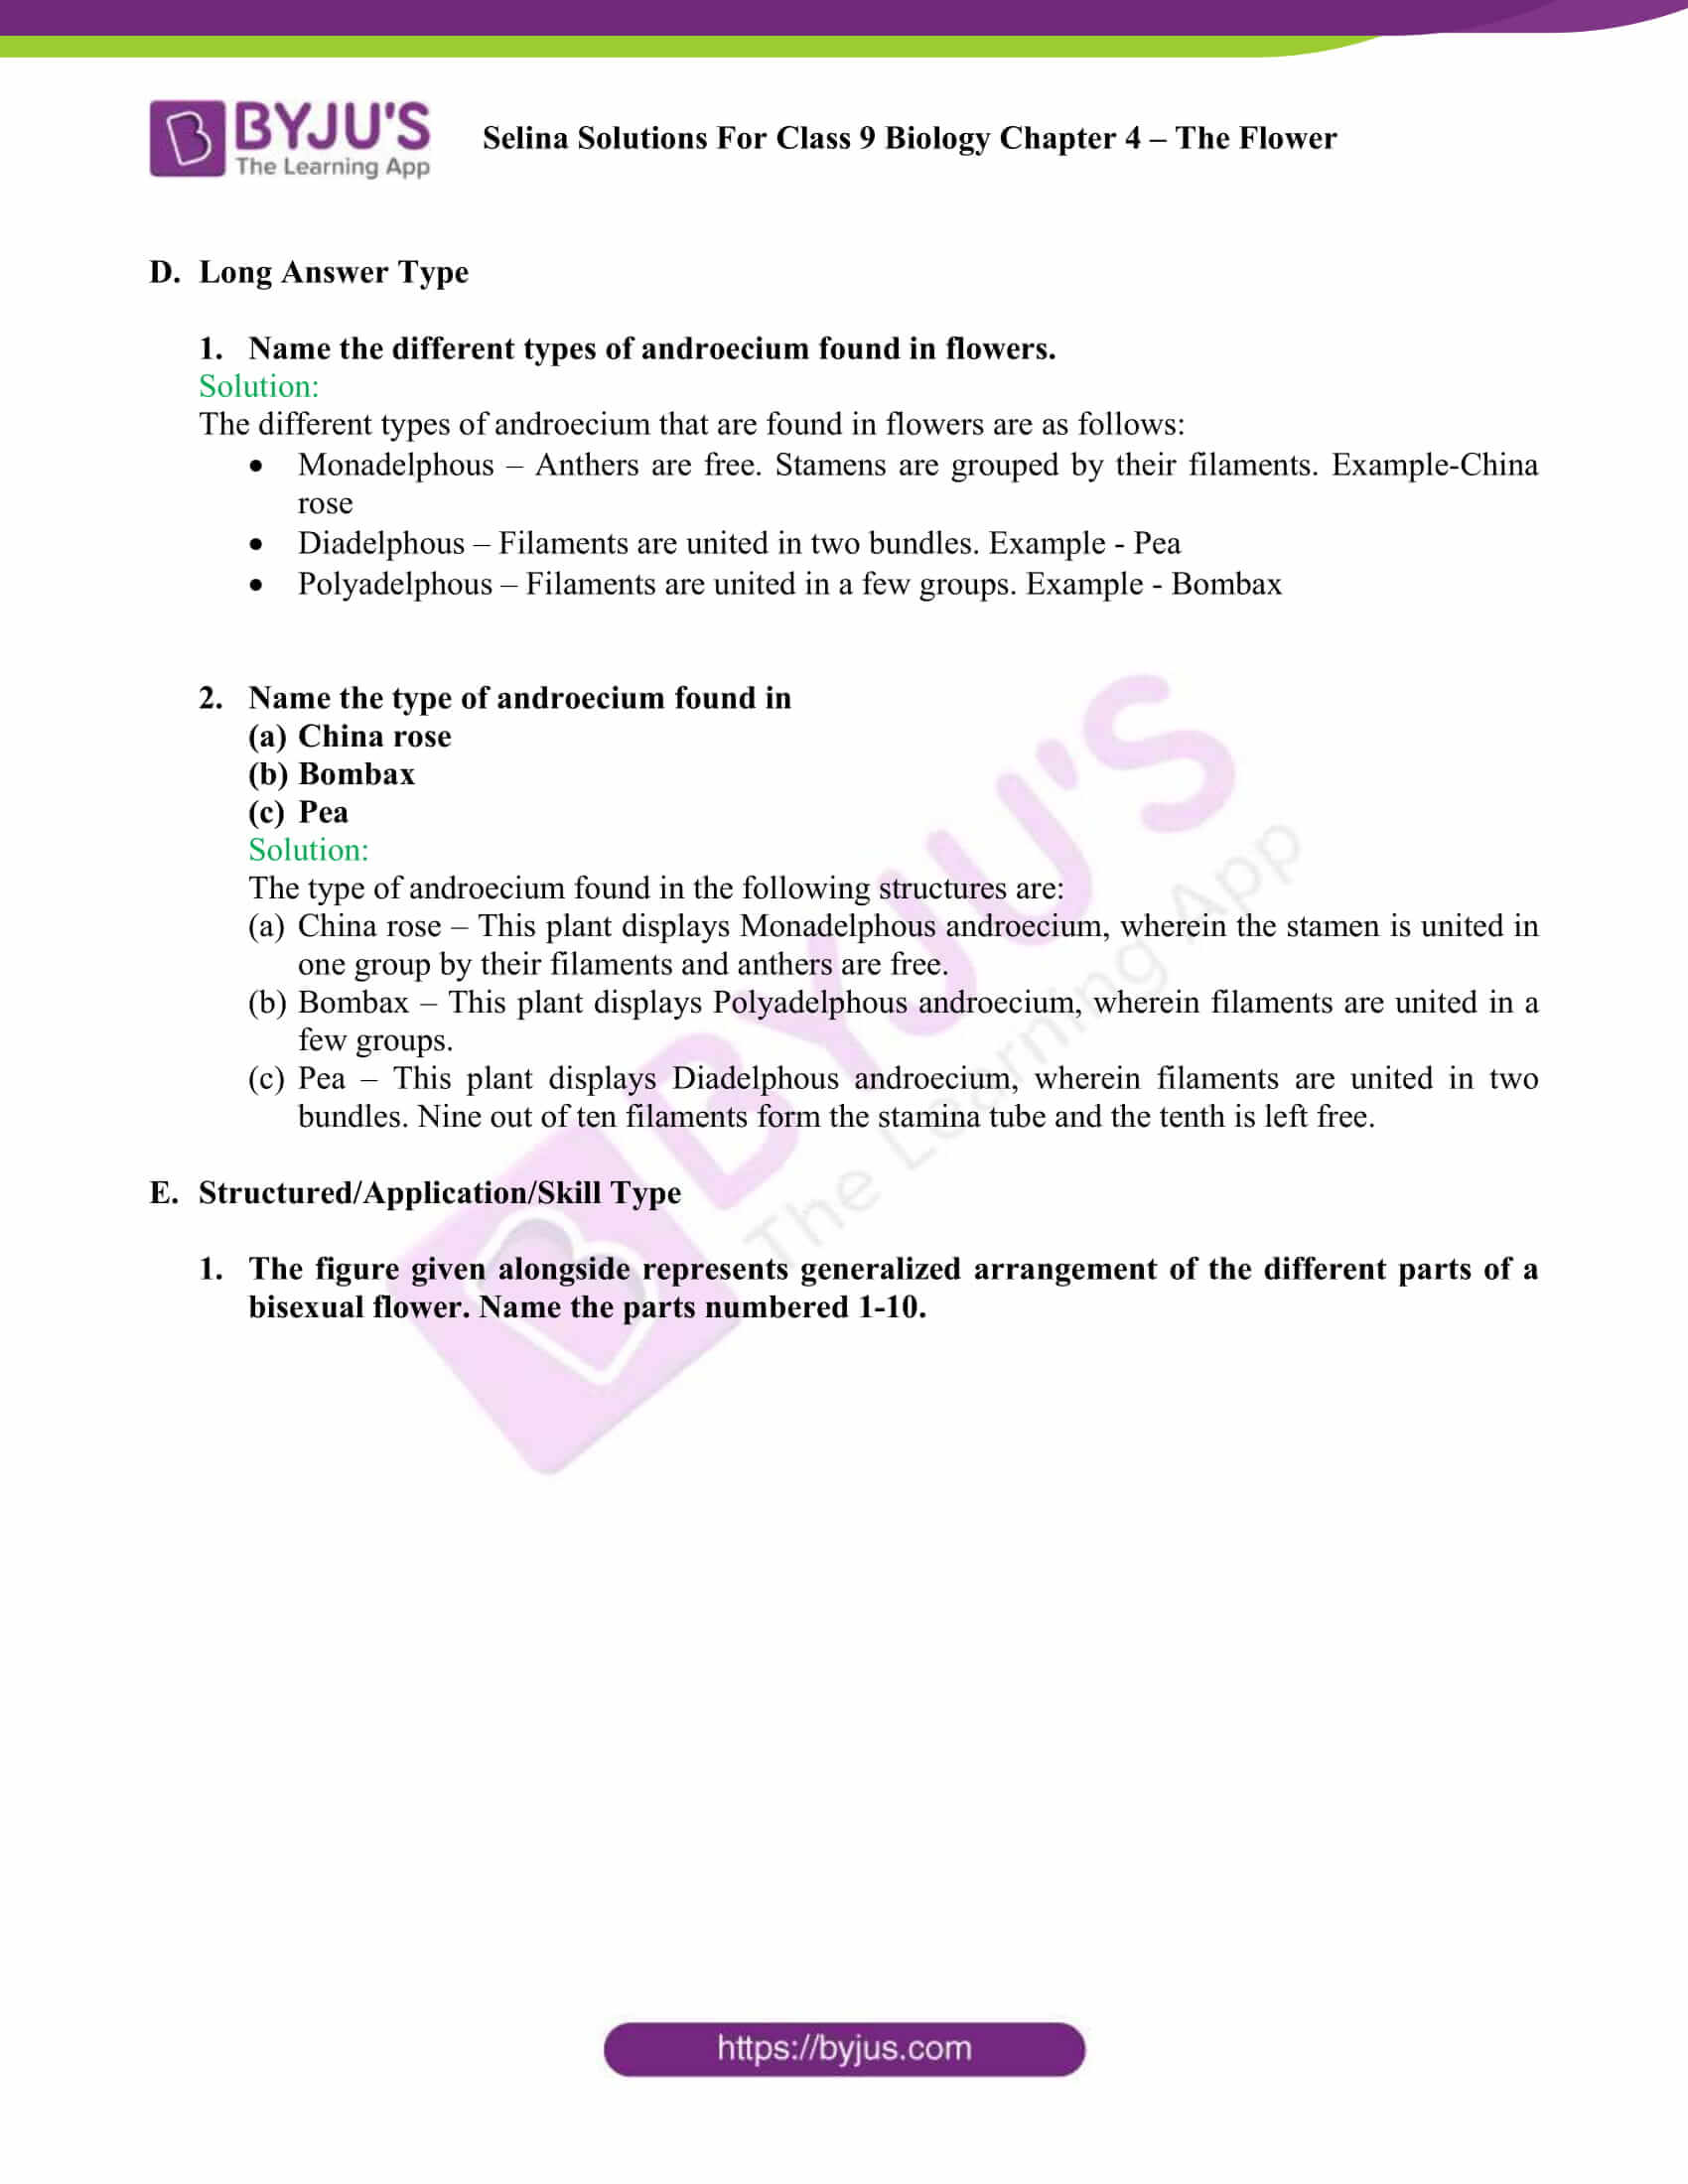 Selina Solutions For Class 9 Biology Chapter 4 The Flower part 5